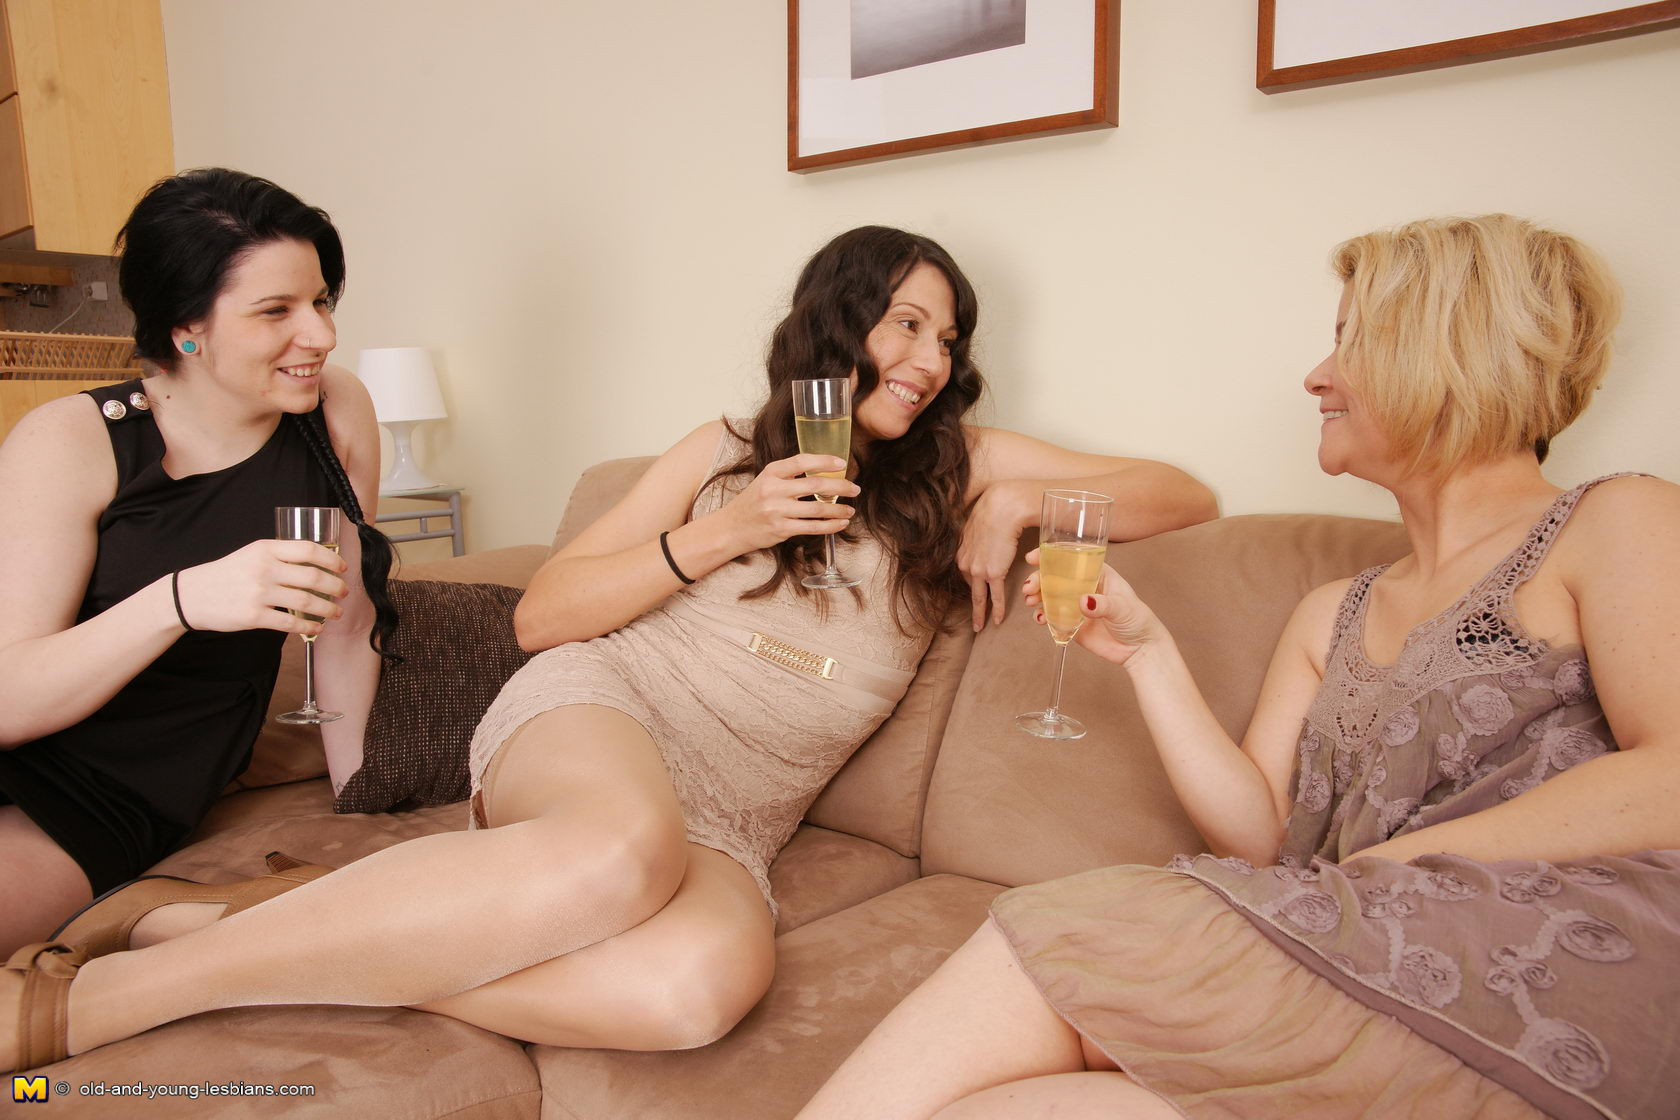 affiliates old and young lesbians free 4398 70309